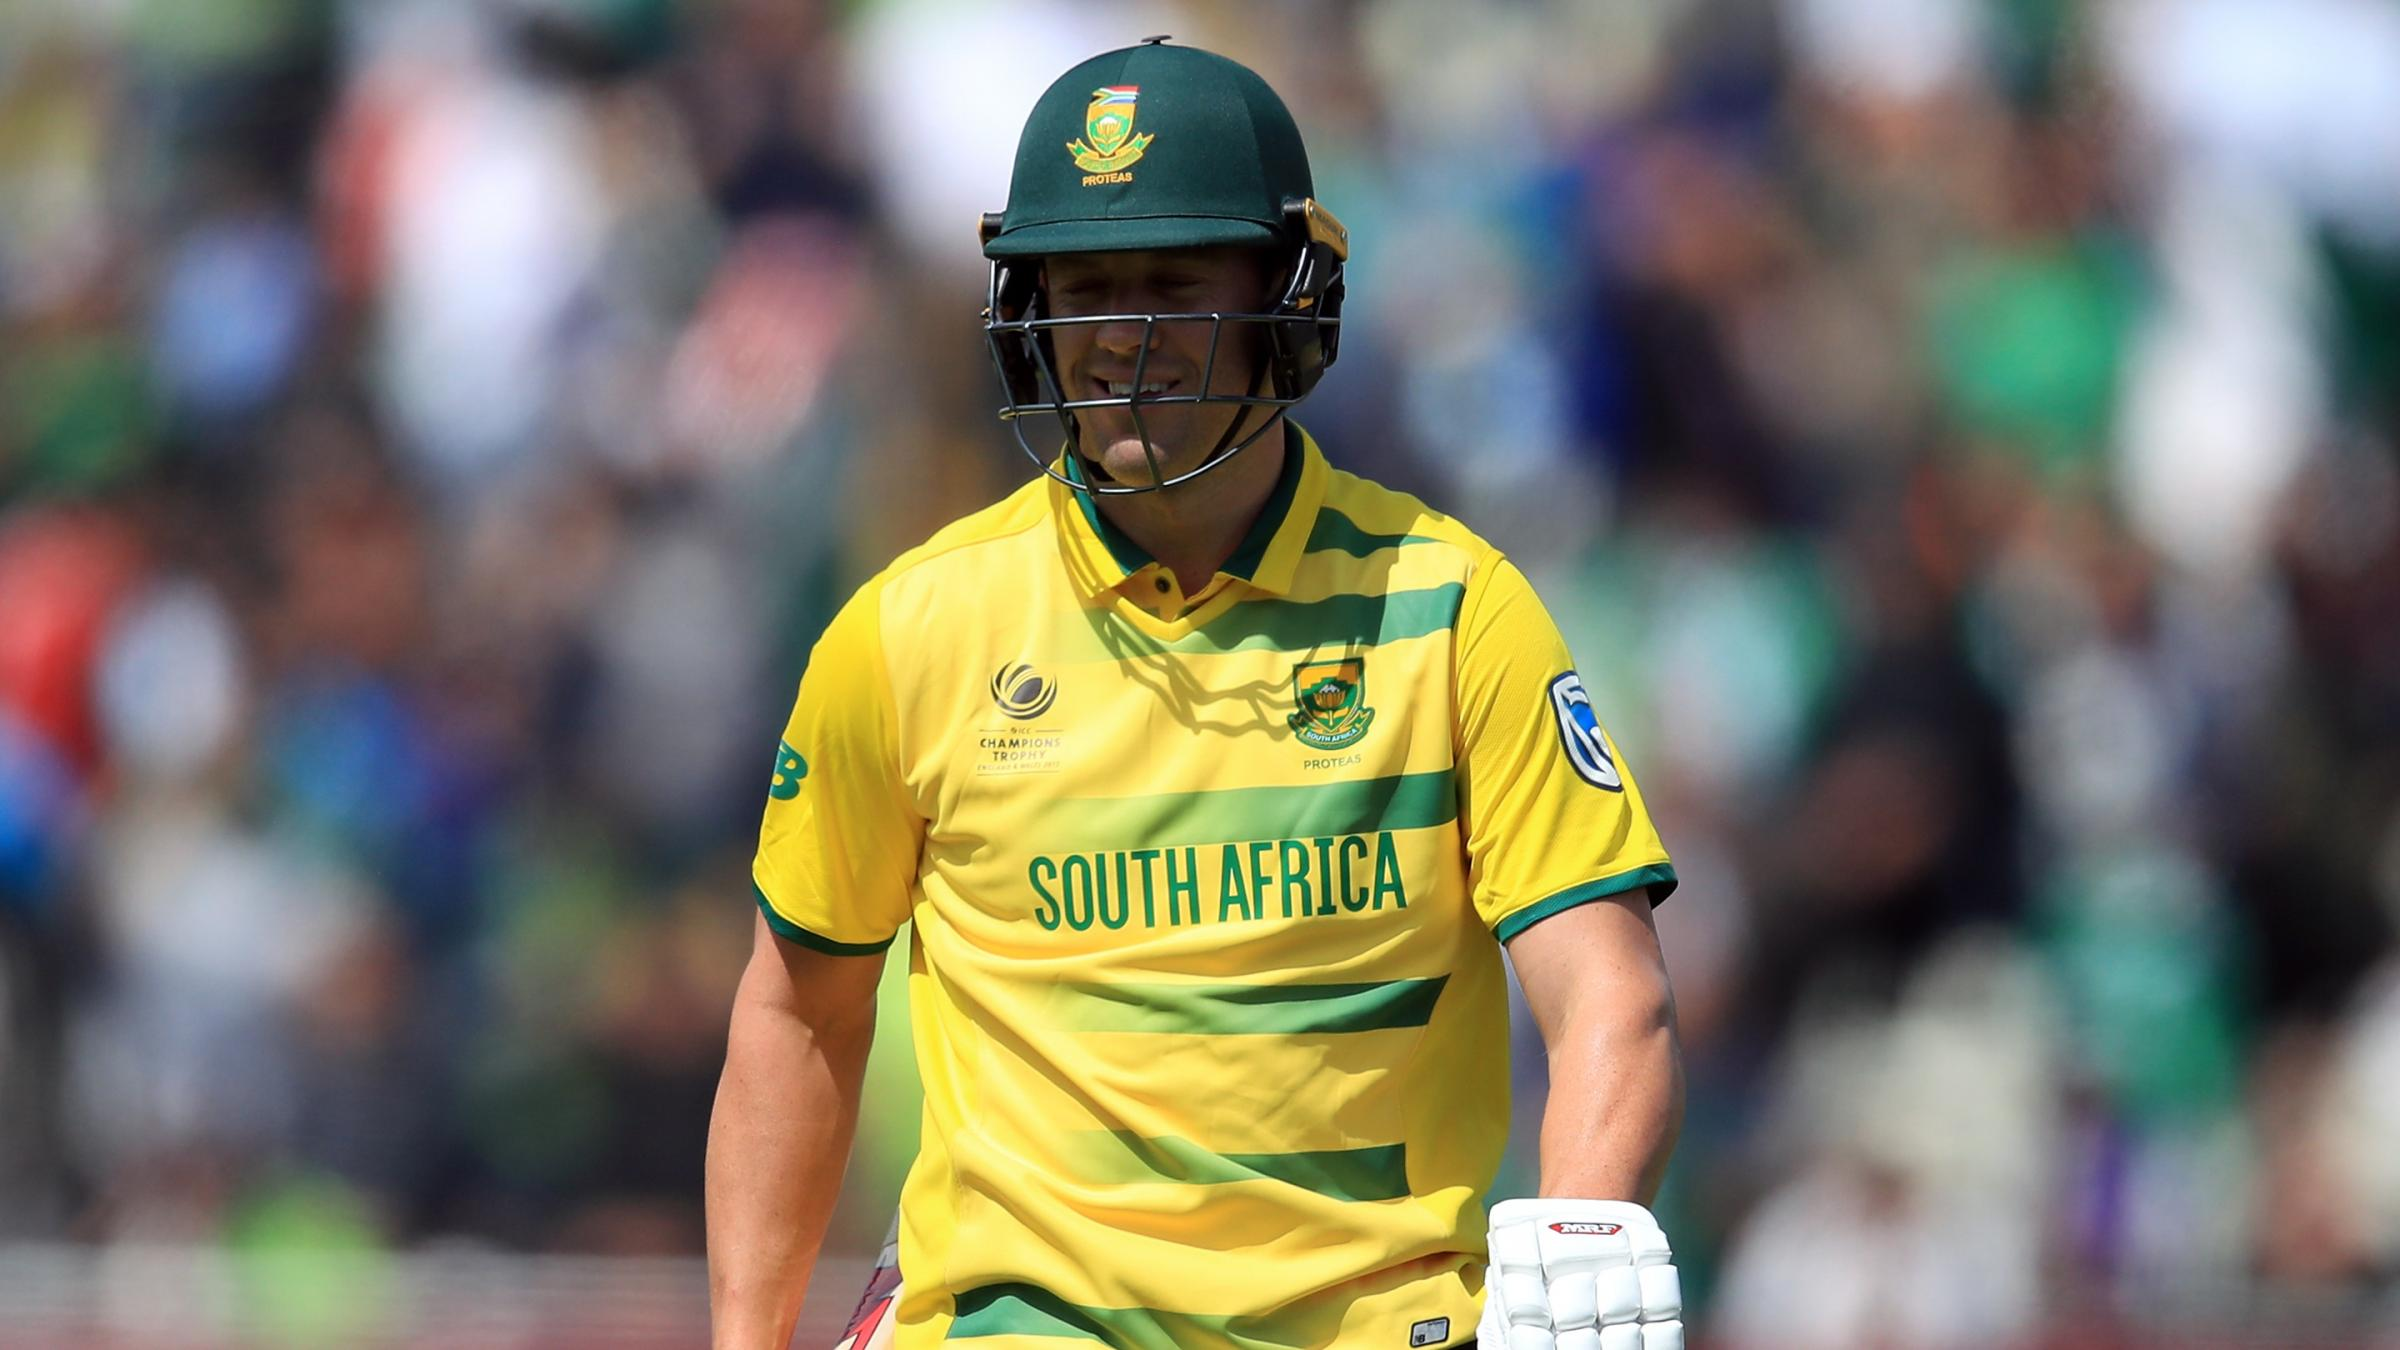 De Villiers to lead South Africa in T20 series v England